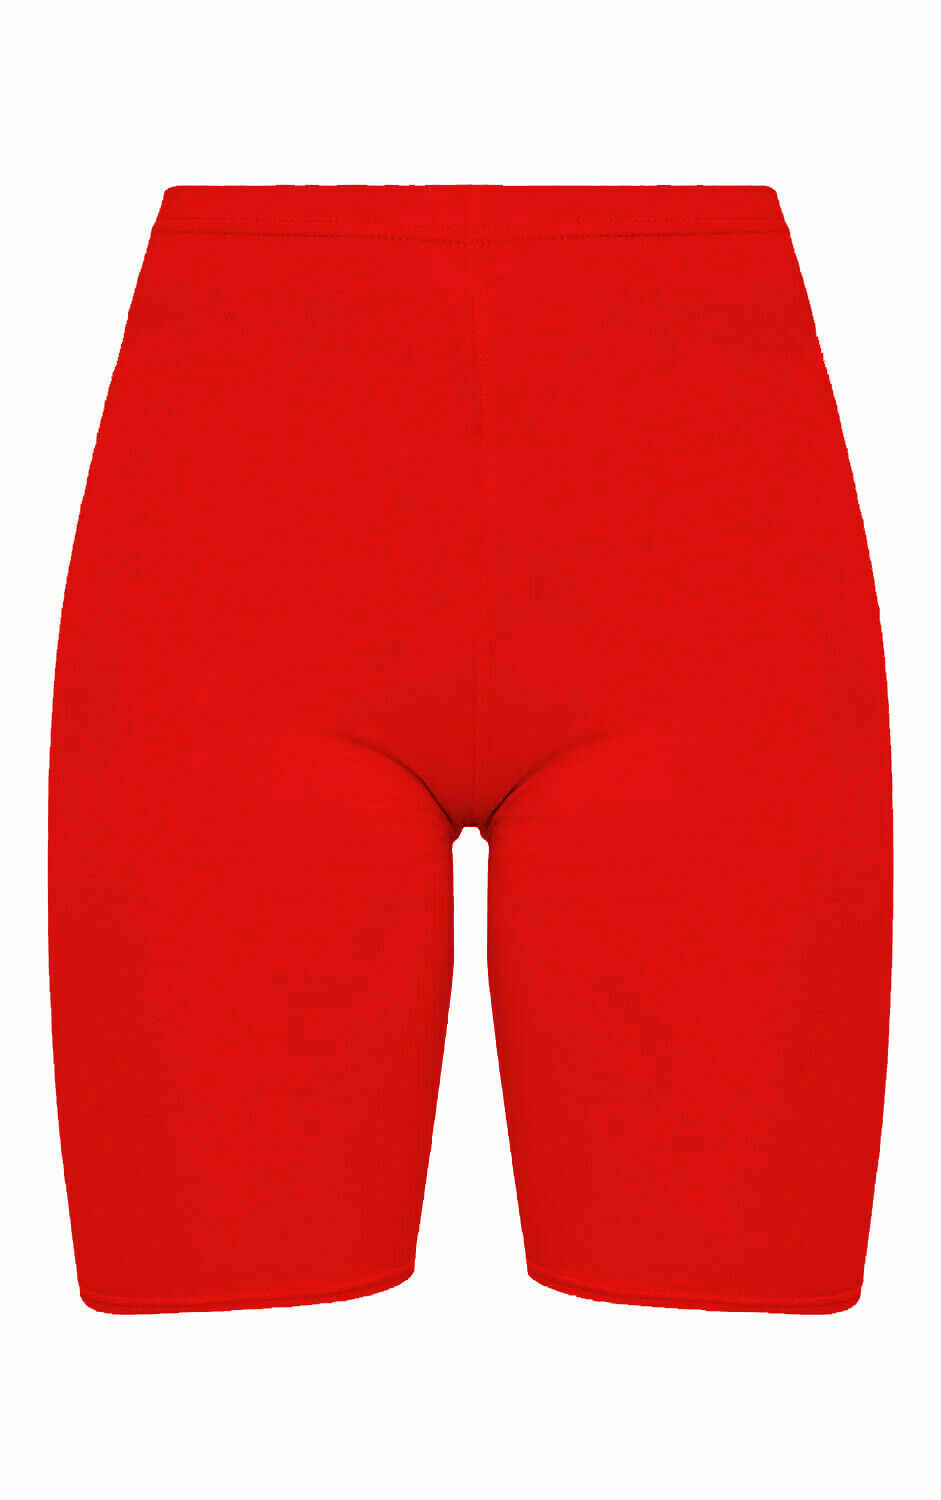 Crazy Chick Women Red Microfibre Cycling Shorts